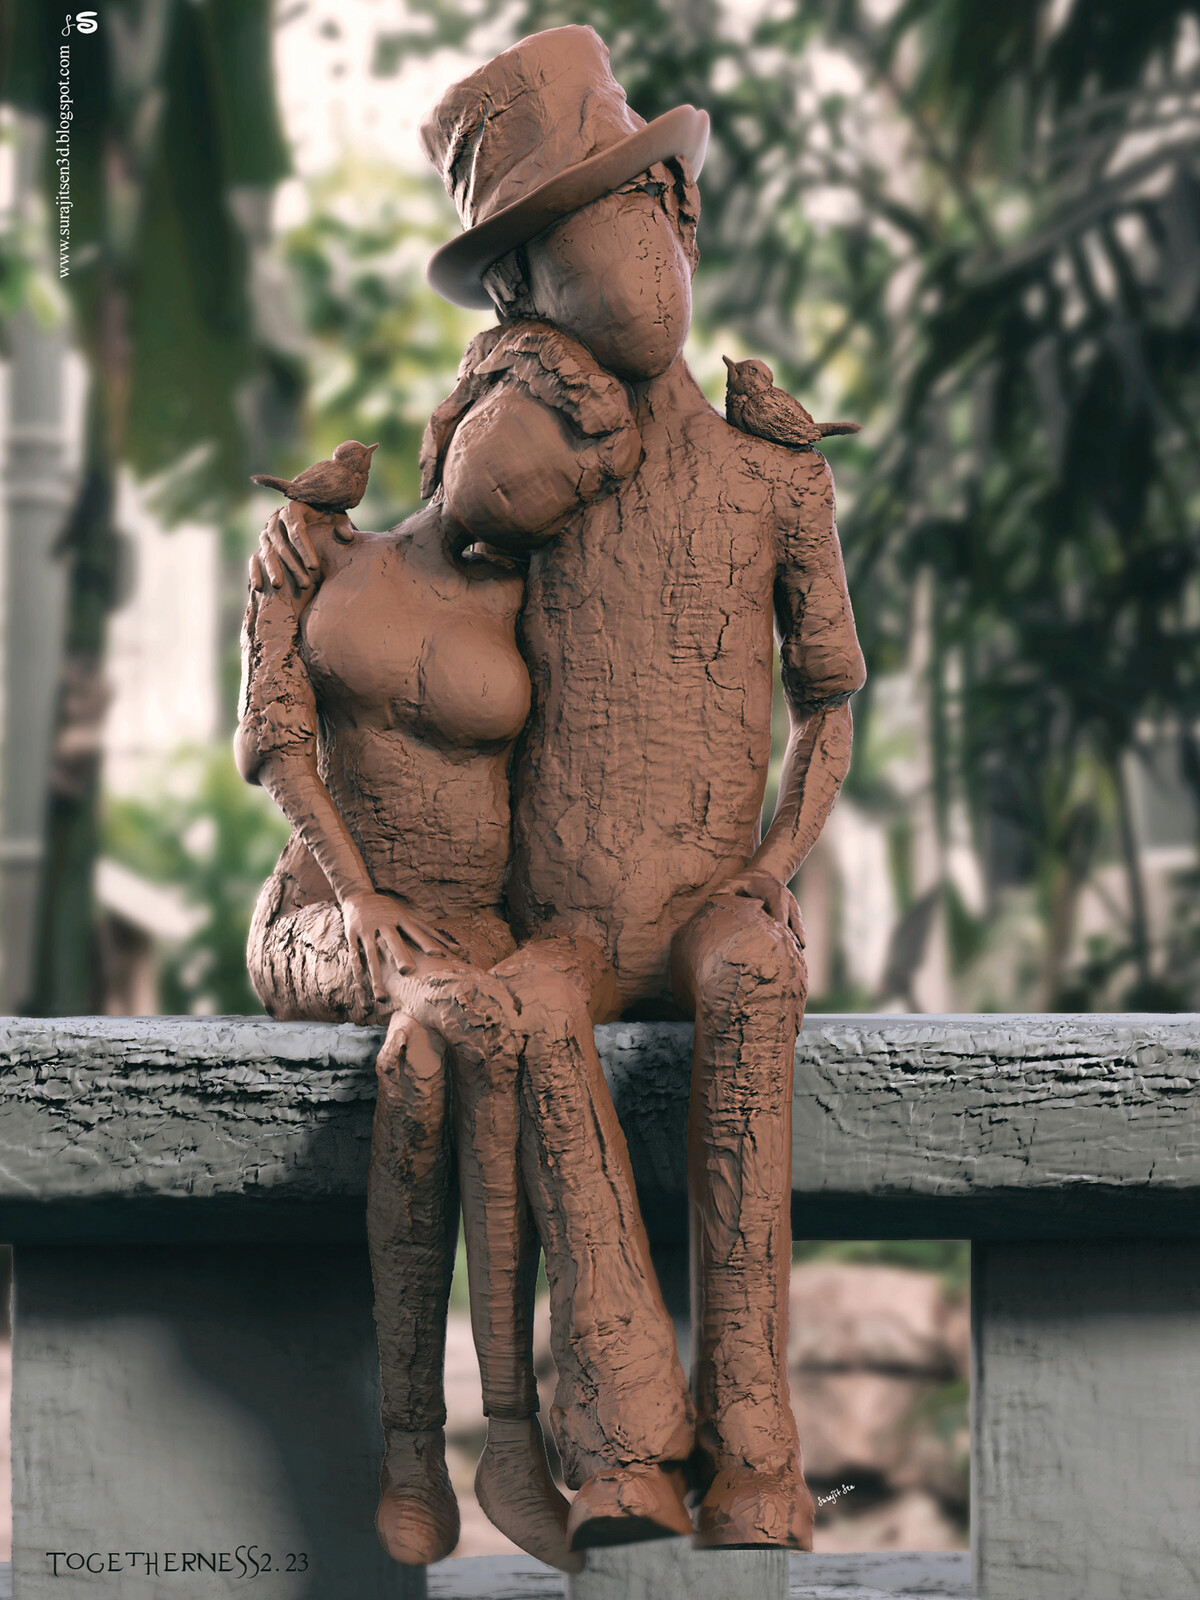 Togetherness2.23 Digital Sculpture Wish to share... Background music- #hanszimmermusic